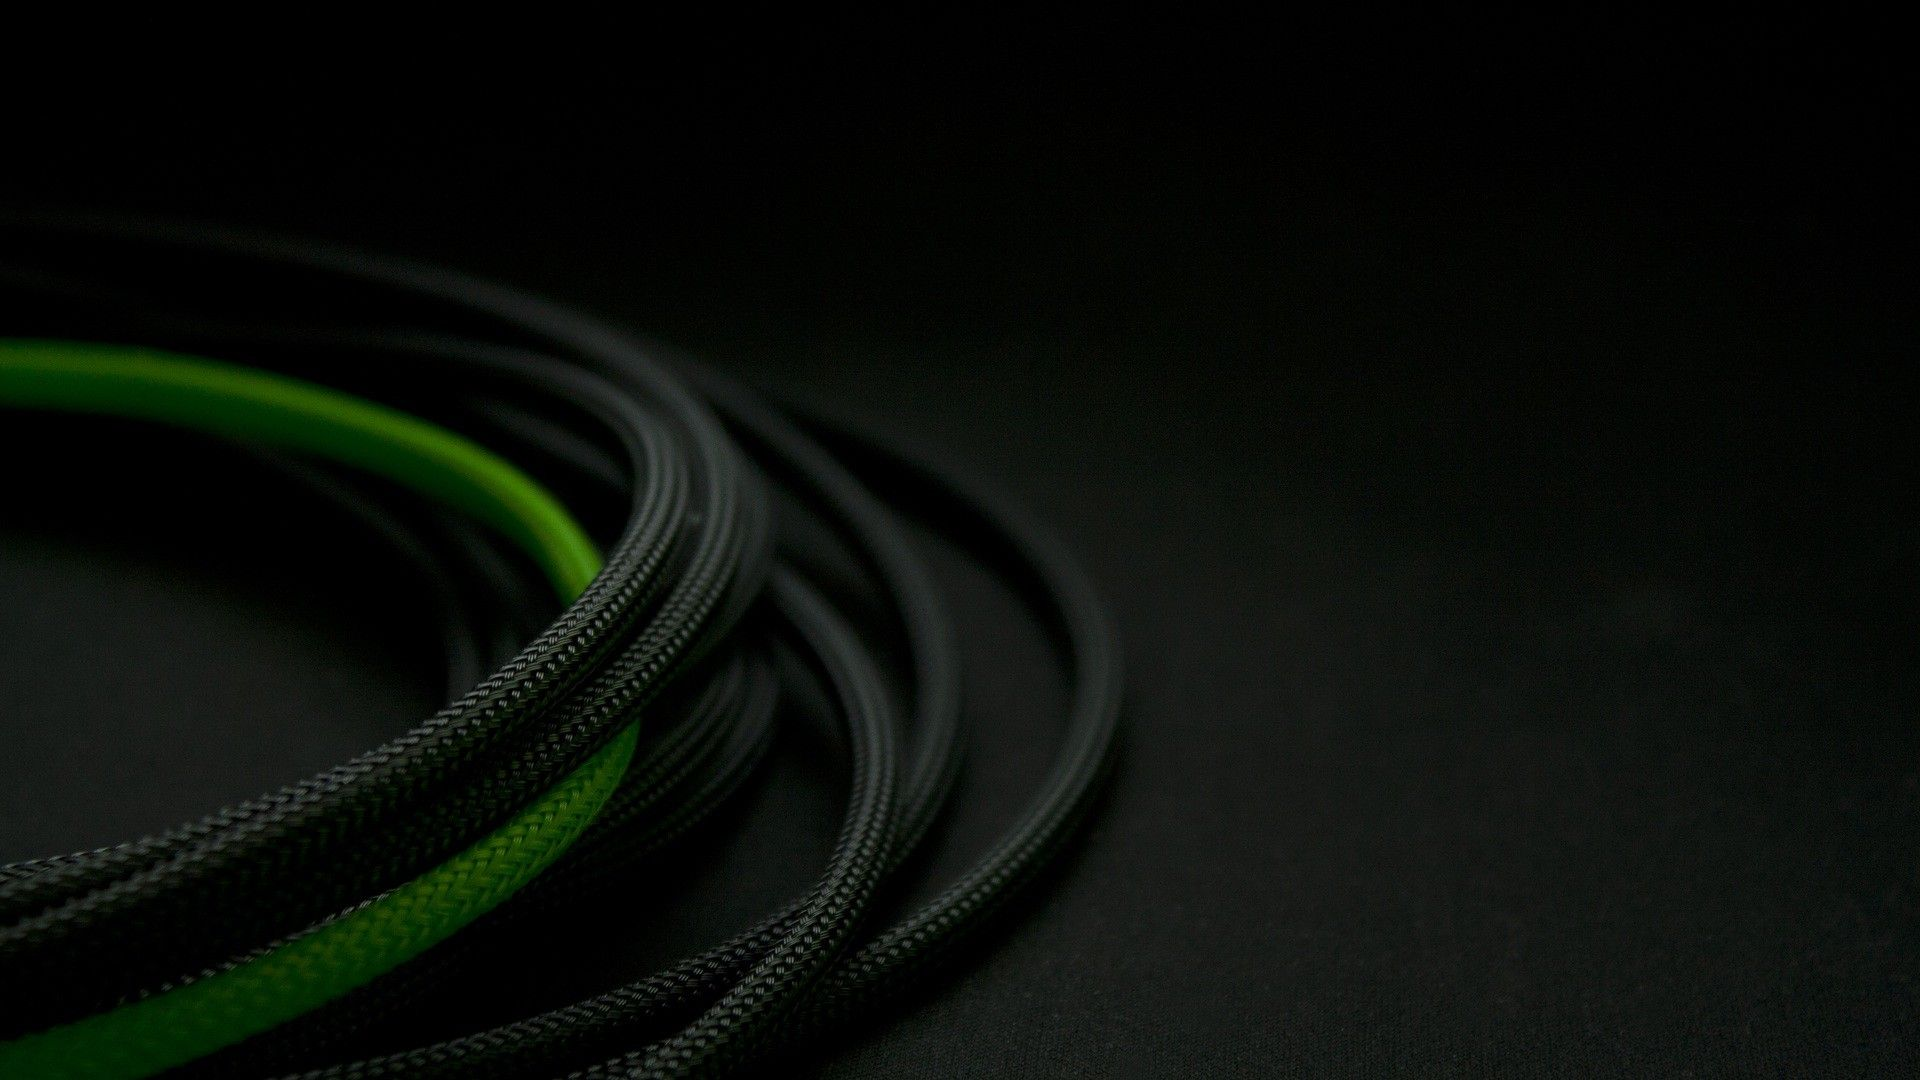 Download wallpaper black and green gallery